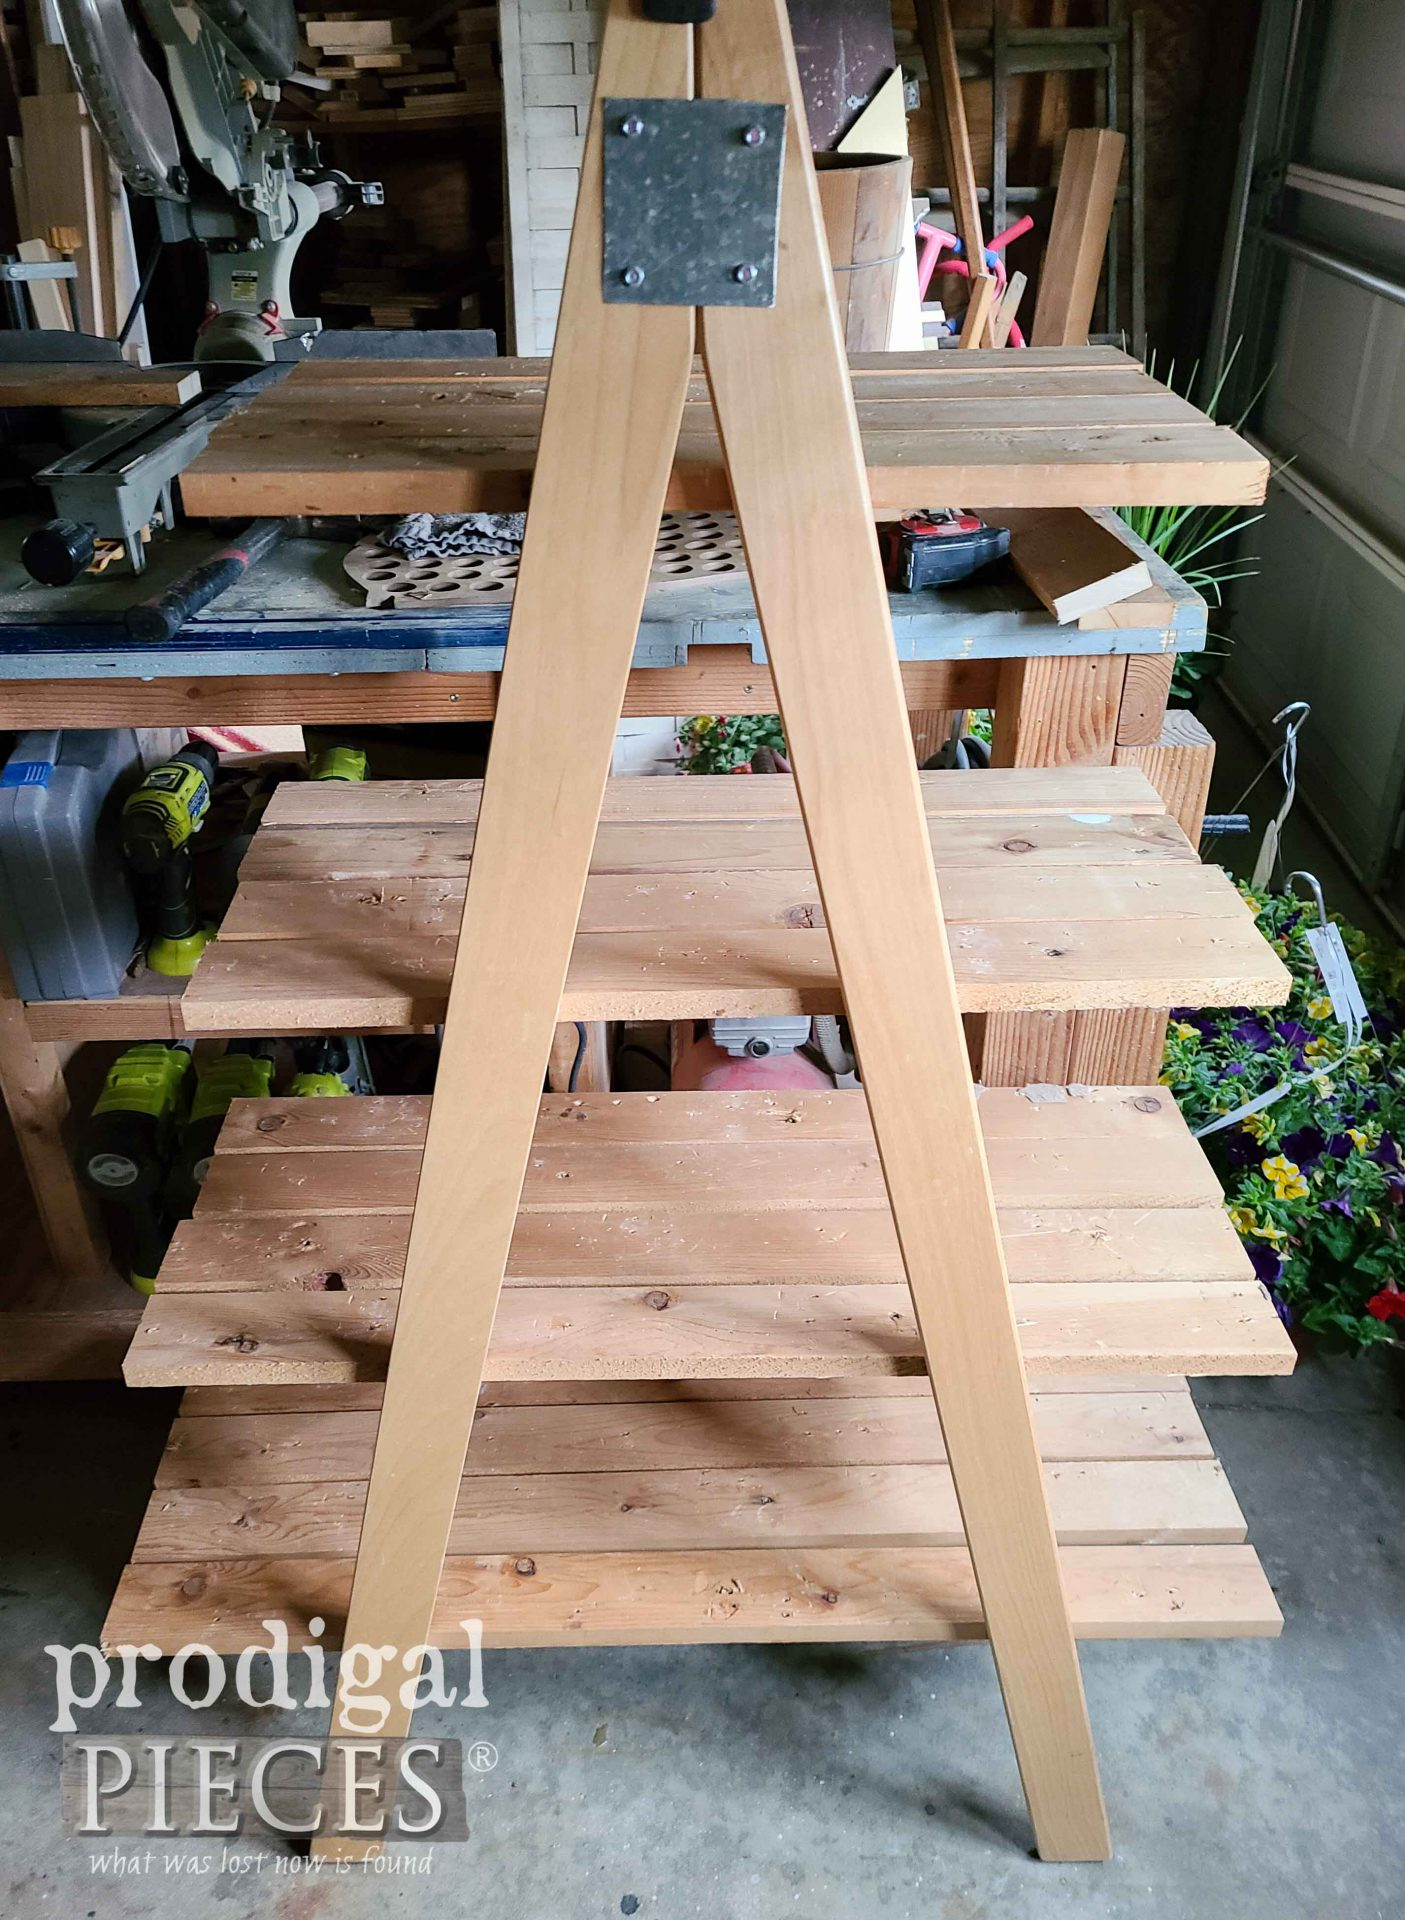 Tiered Shelved Dry Fit on Upcycled Bunk Bed Ladders | prodigalpieces.com #prodigalpieces